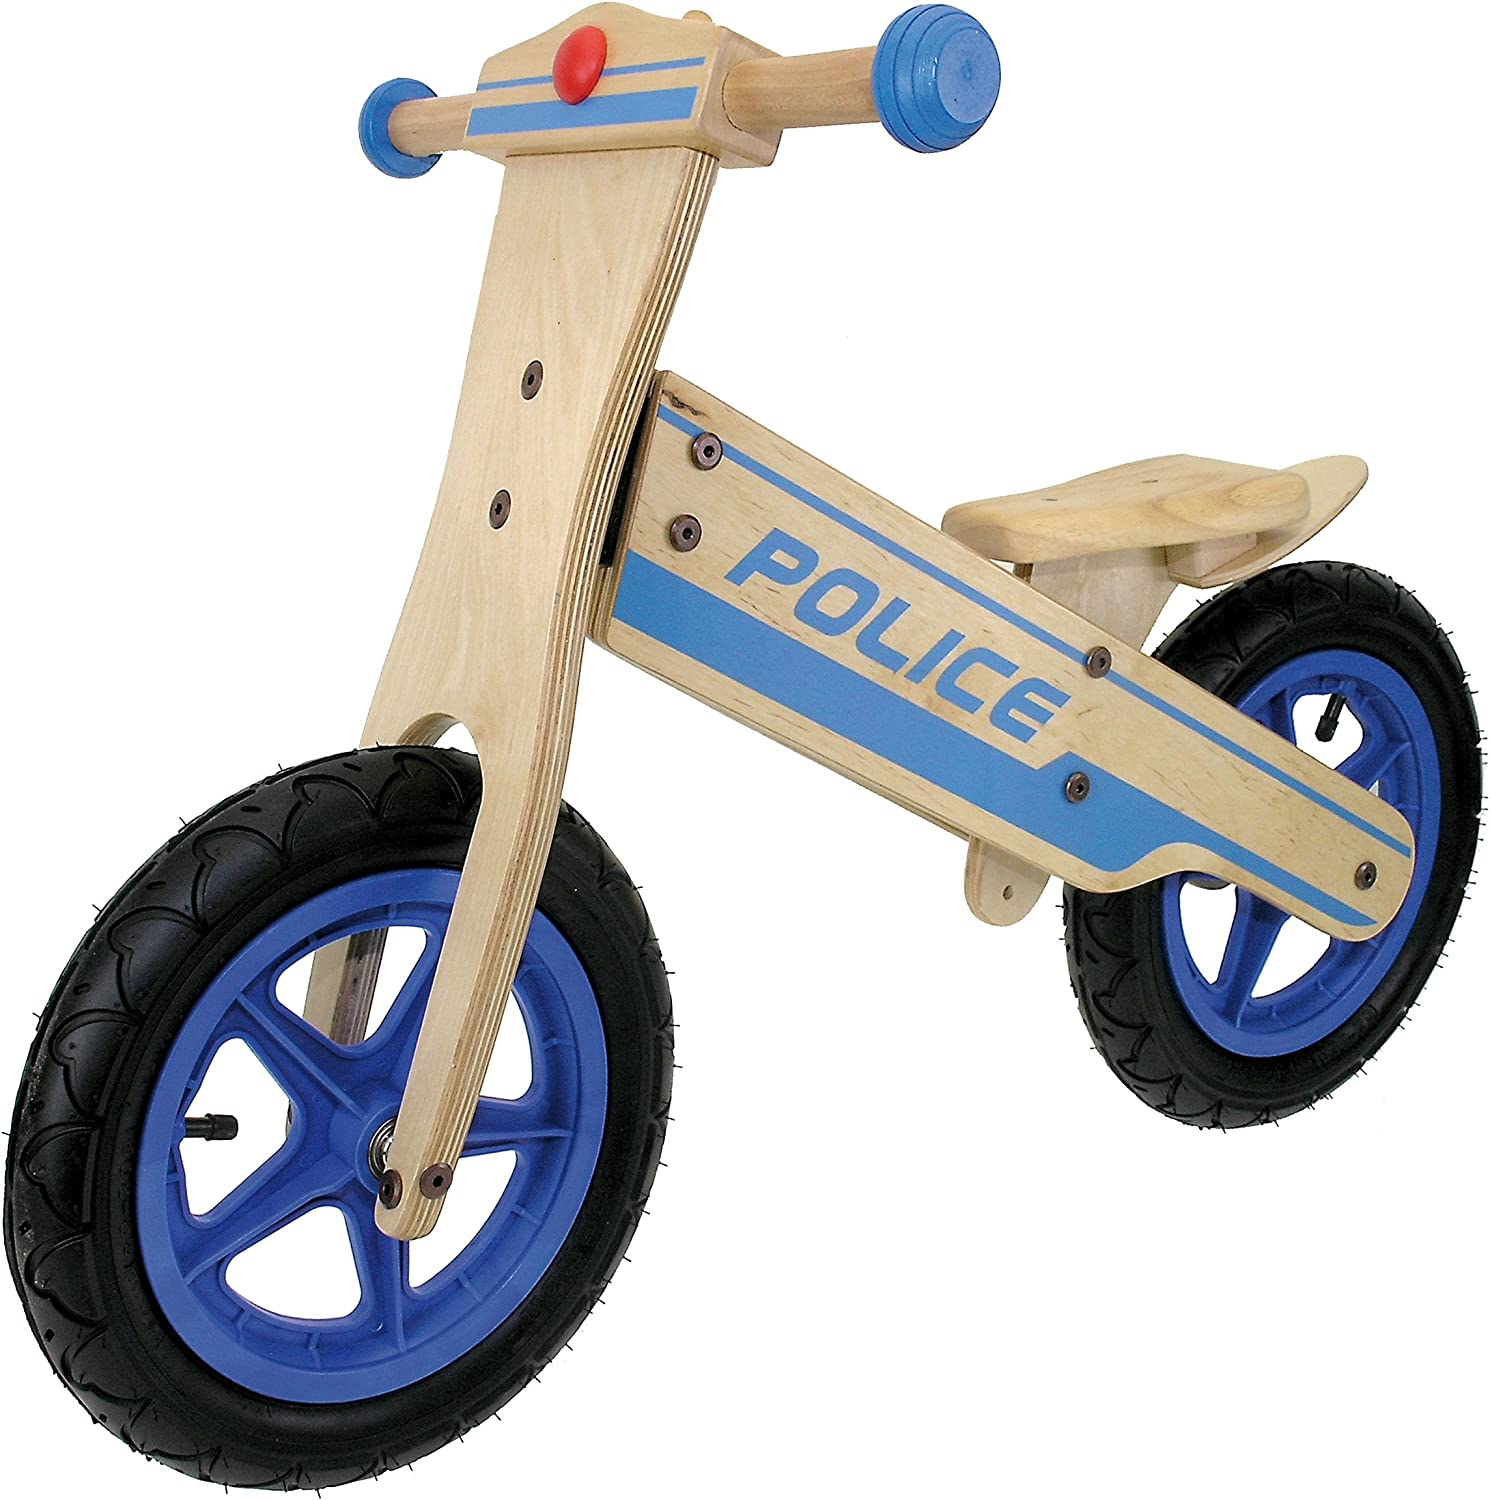 Messingschlager Police - Bicicleta Infantil sin Pedales: Amazon.es ...